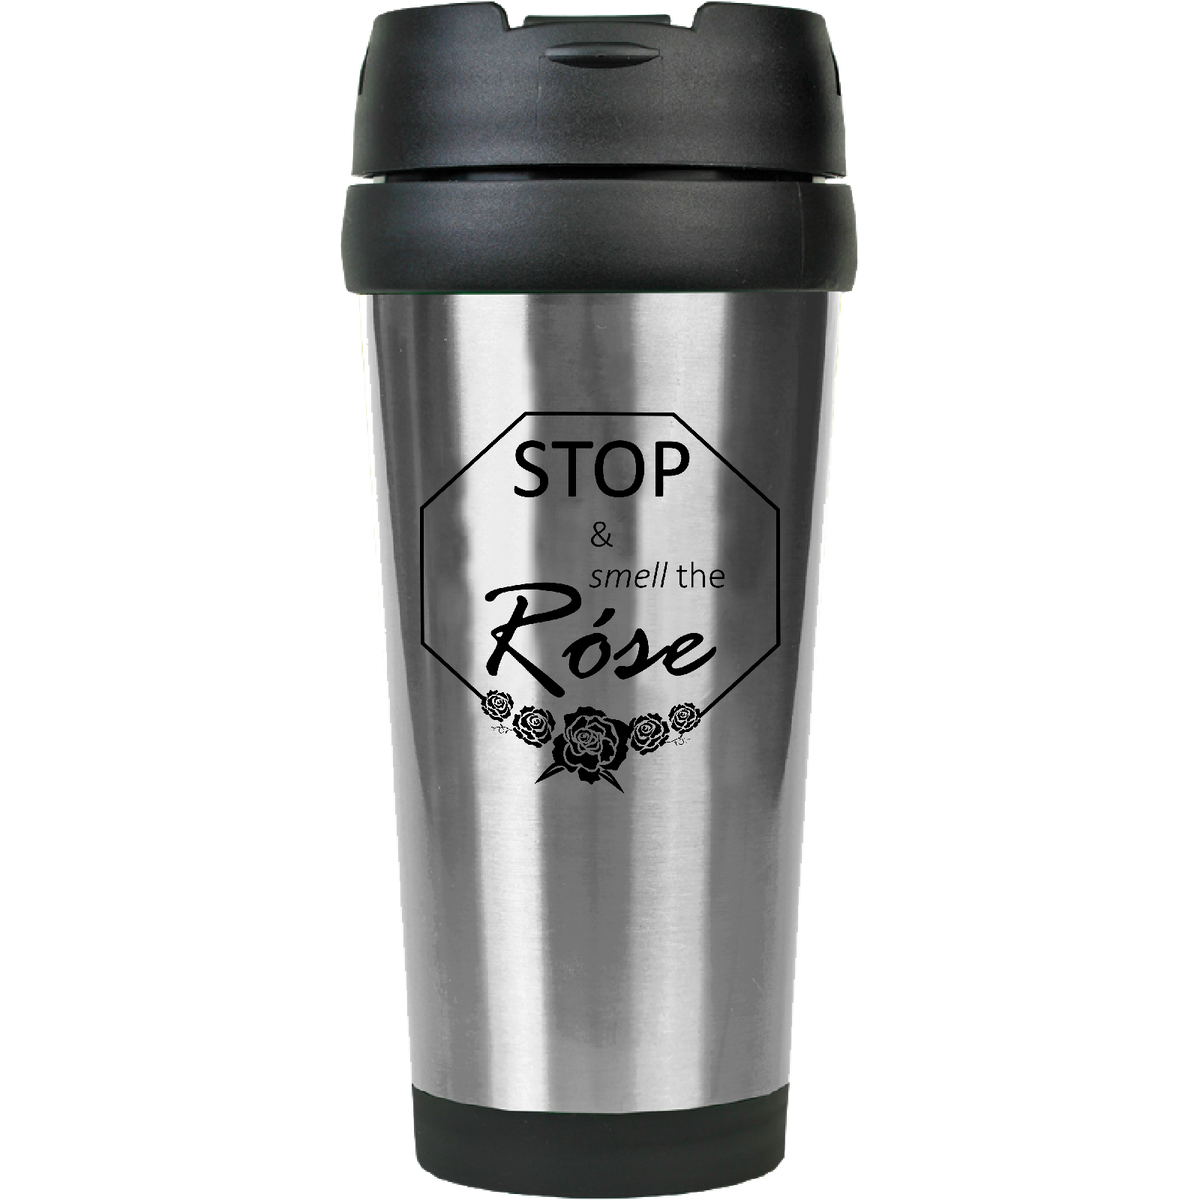 Stop and smell the Rose - 16oz. Engraved Travel Mug with Flip Lid